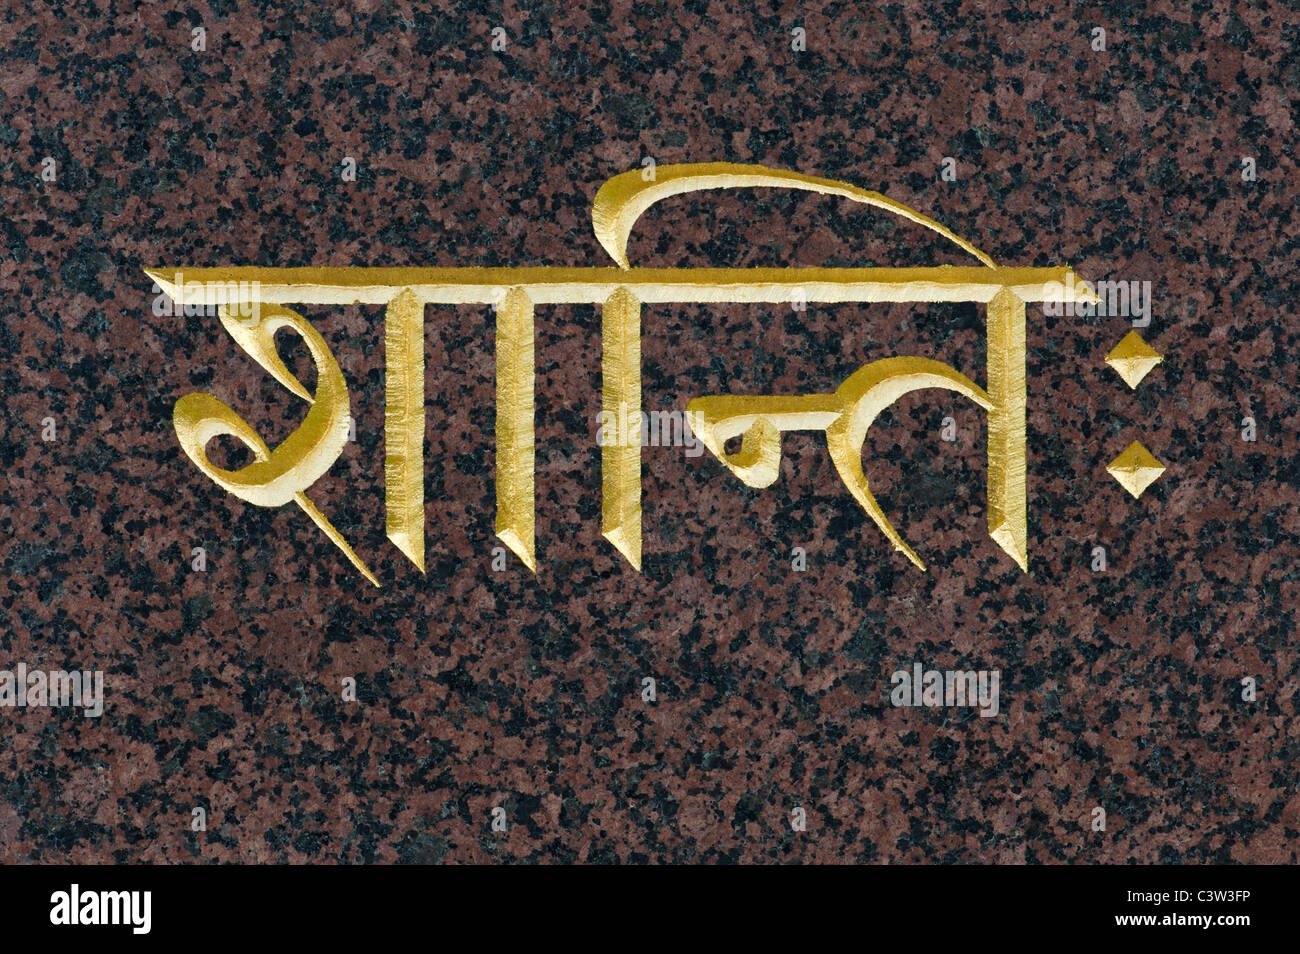 Sanskrit word for Peace on the peace Obelisk at Waterperry gardens, Wheatley, Oxfordshire. UK - Stock Image